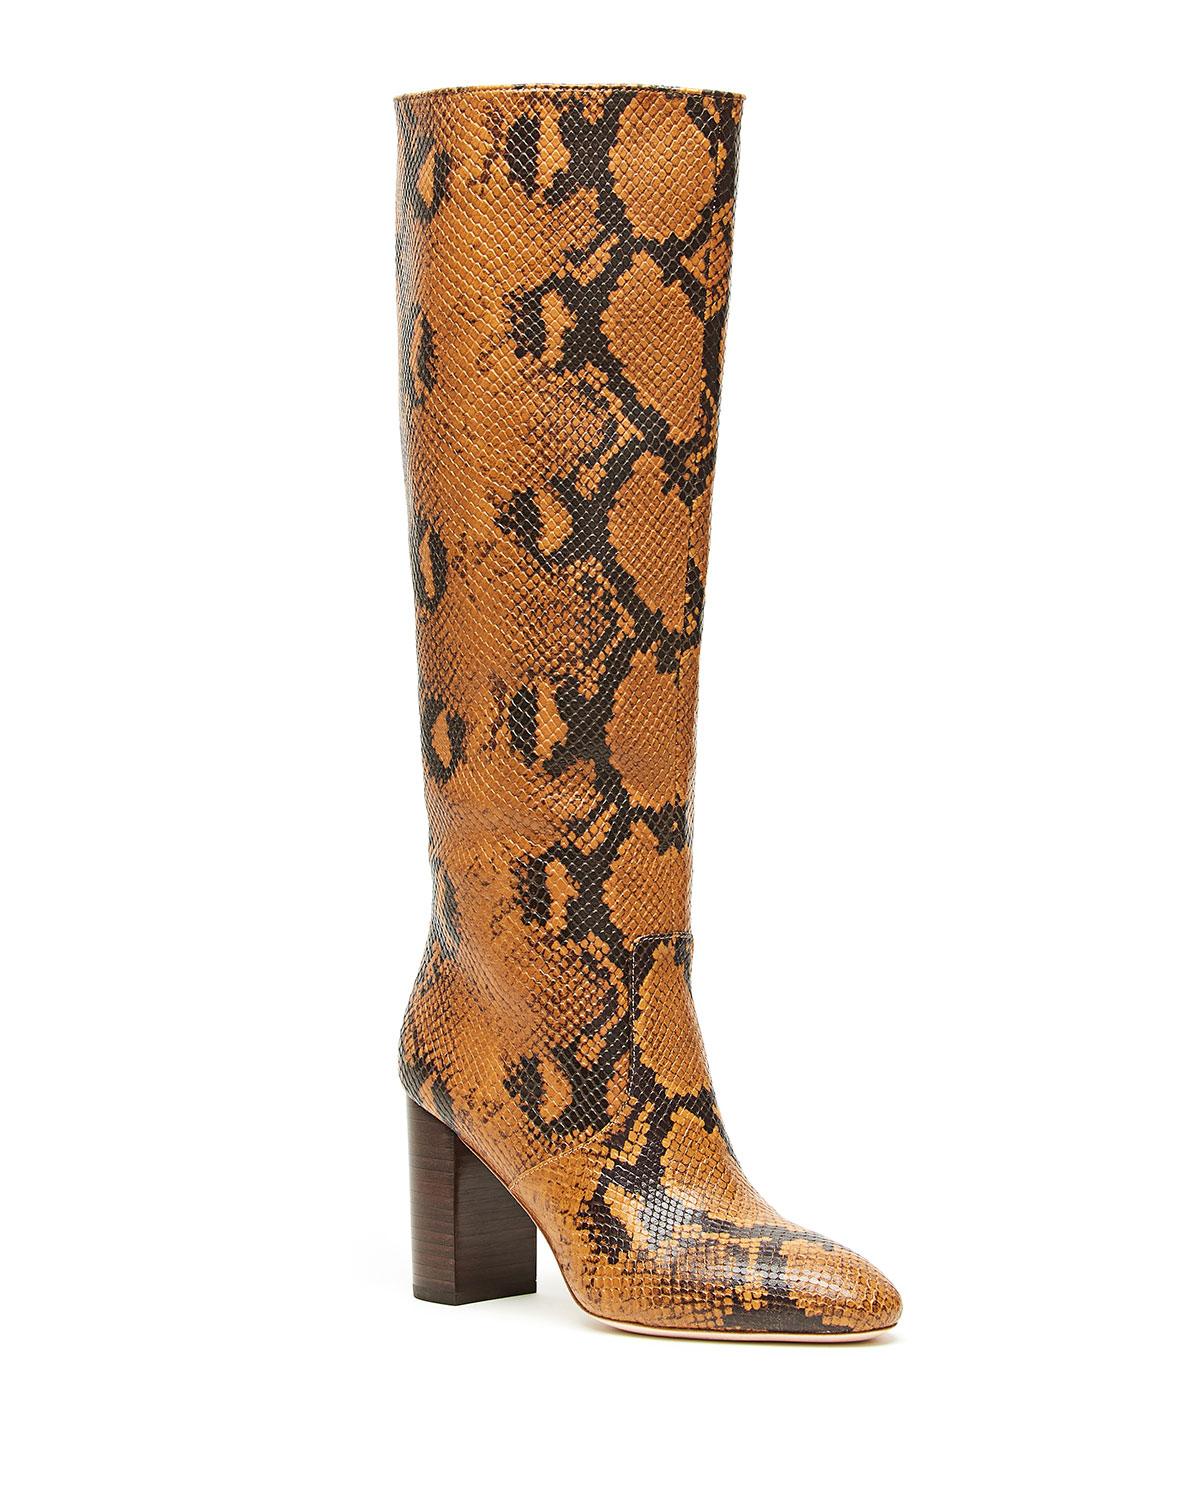 Loeffler Randall Goldy Python-Print Leather Knee Boots